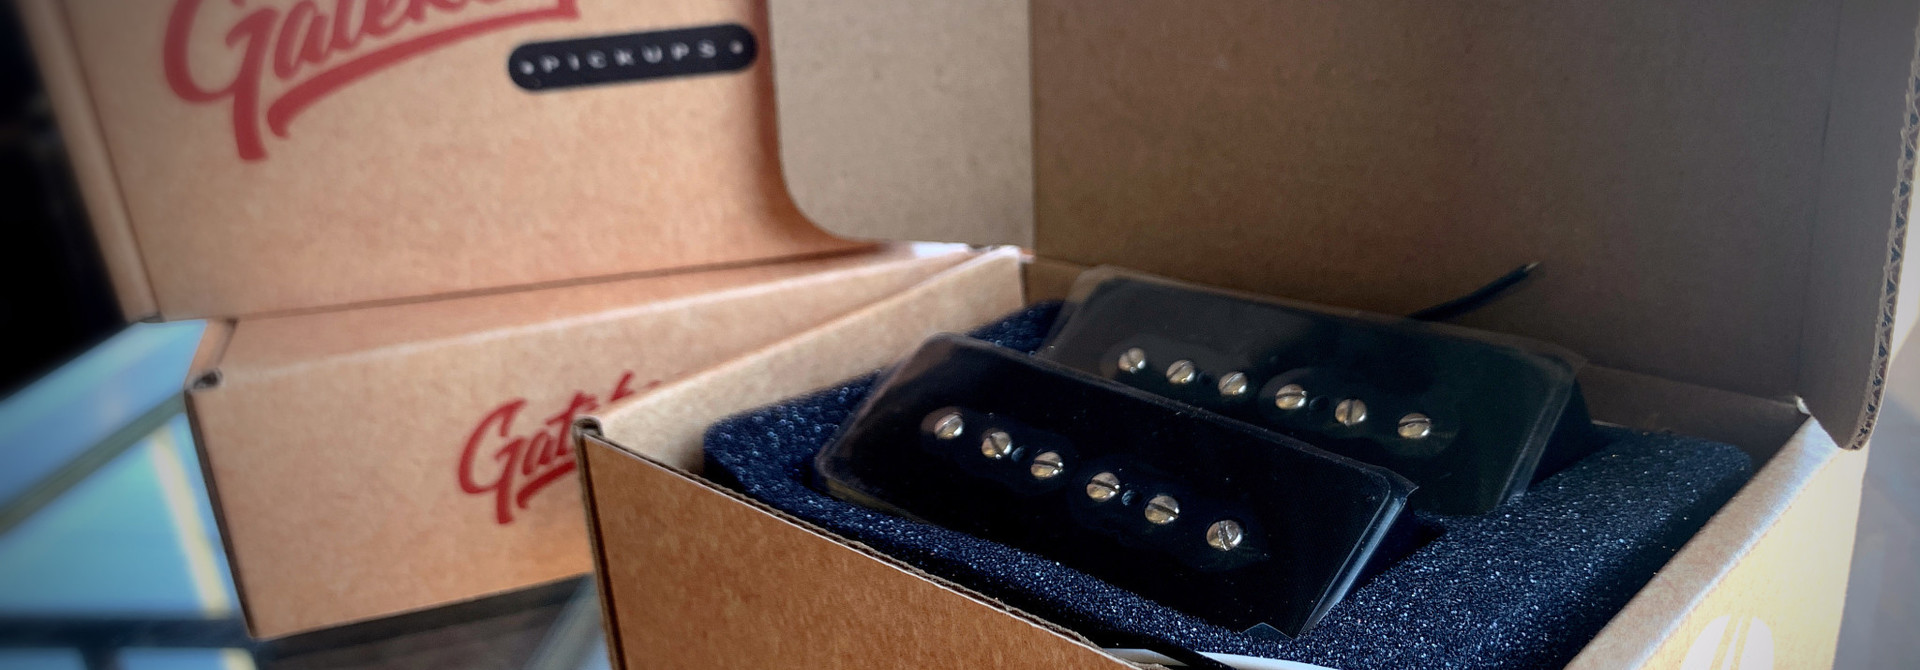 Gatekeeper Pickups P90 Set - GKP-SC90